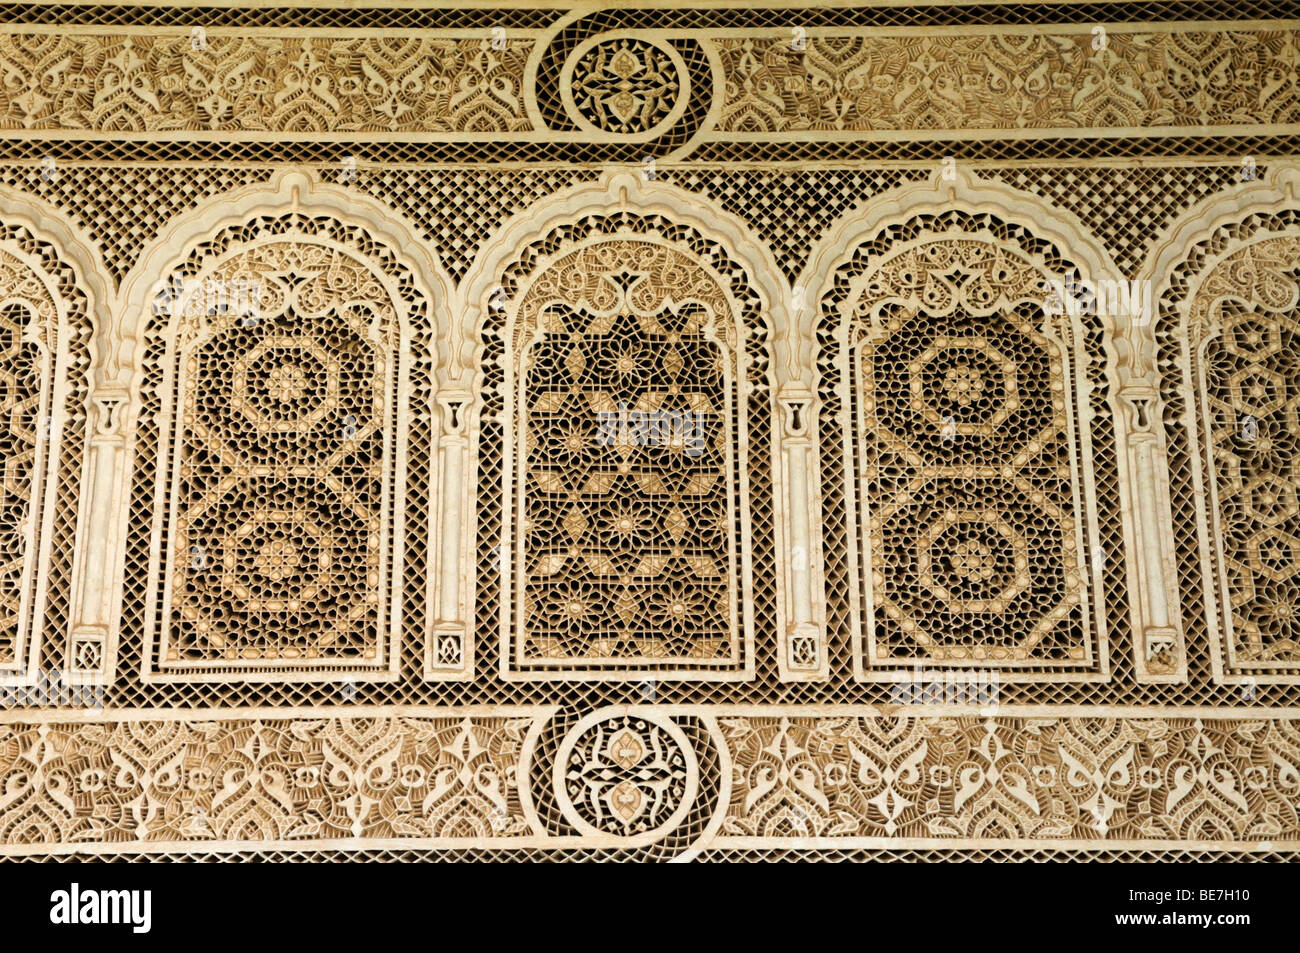 Morocco; Marrakech; Bahia Palace; Decorative Stucco Work - Stock Image